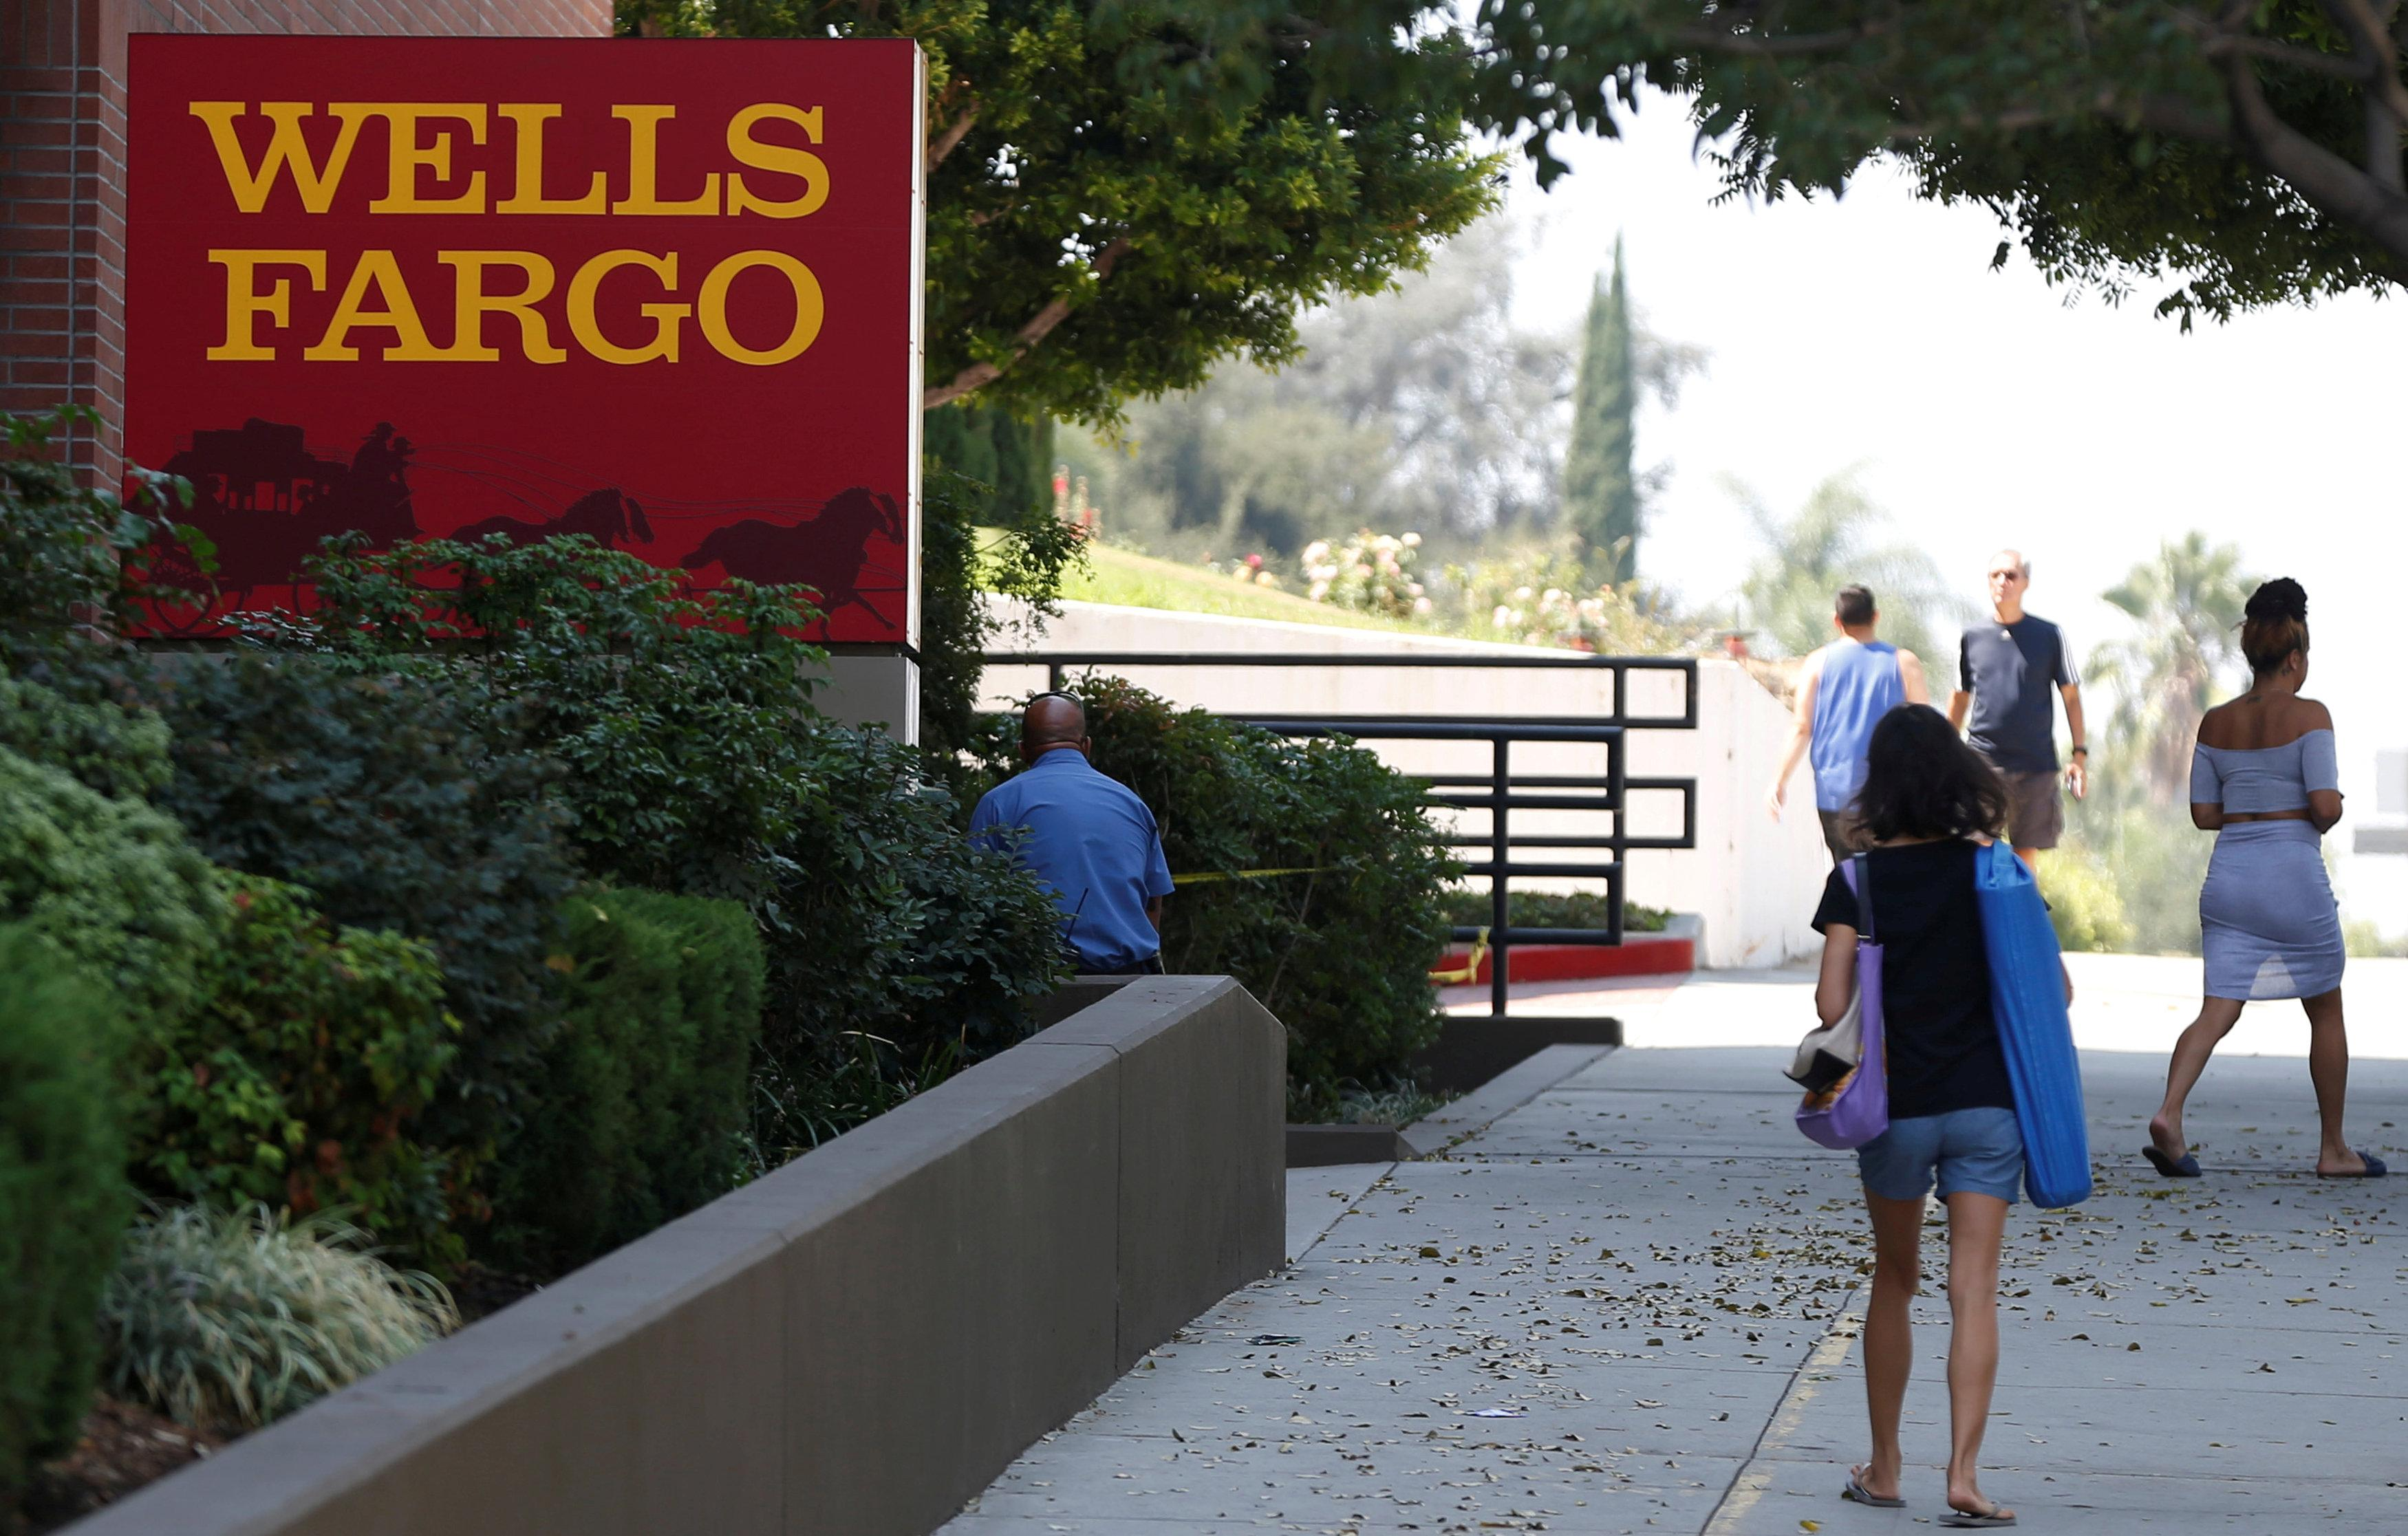 People walk by a Wells Fargo banking location in Pasadena, California, U.S., September 8, 2017. Mario Anzuoni